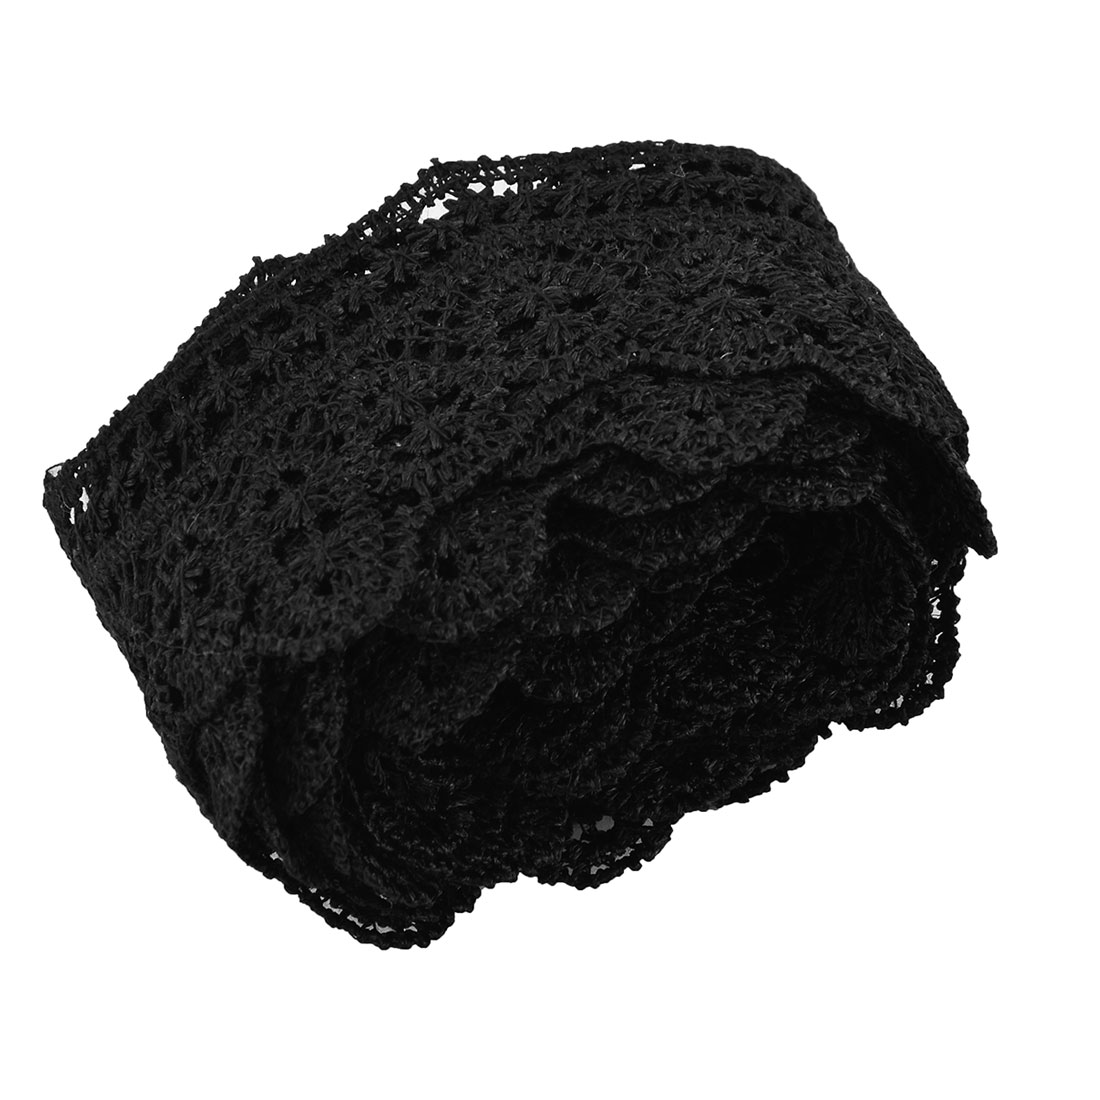 Party Polyester Craft Dress Decorative Lace Trim Applique Black 1.8 Inches Width